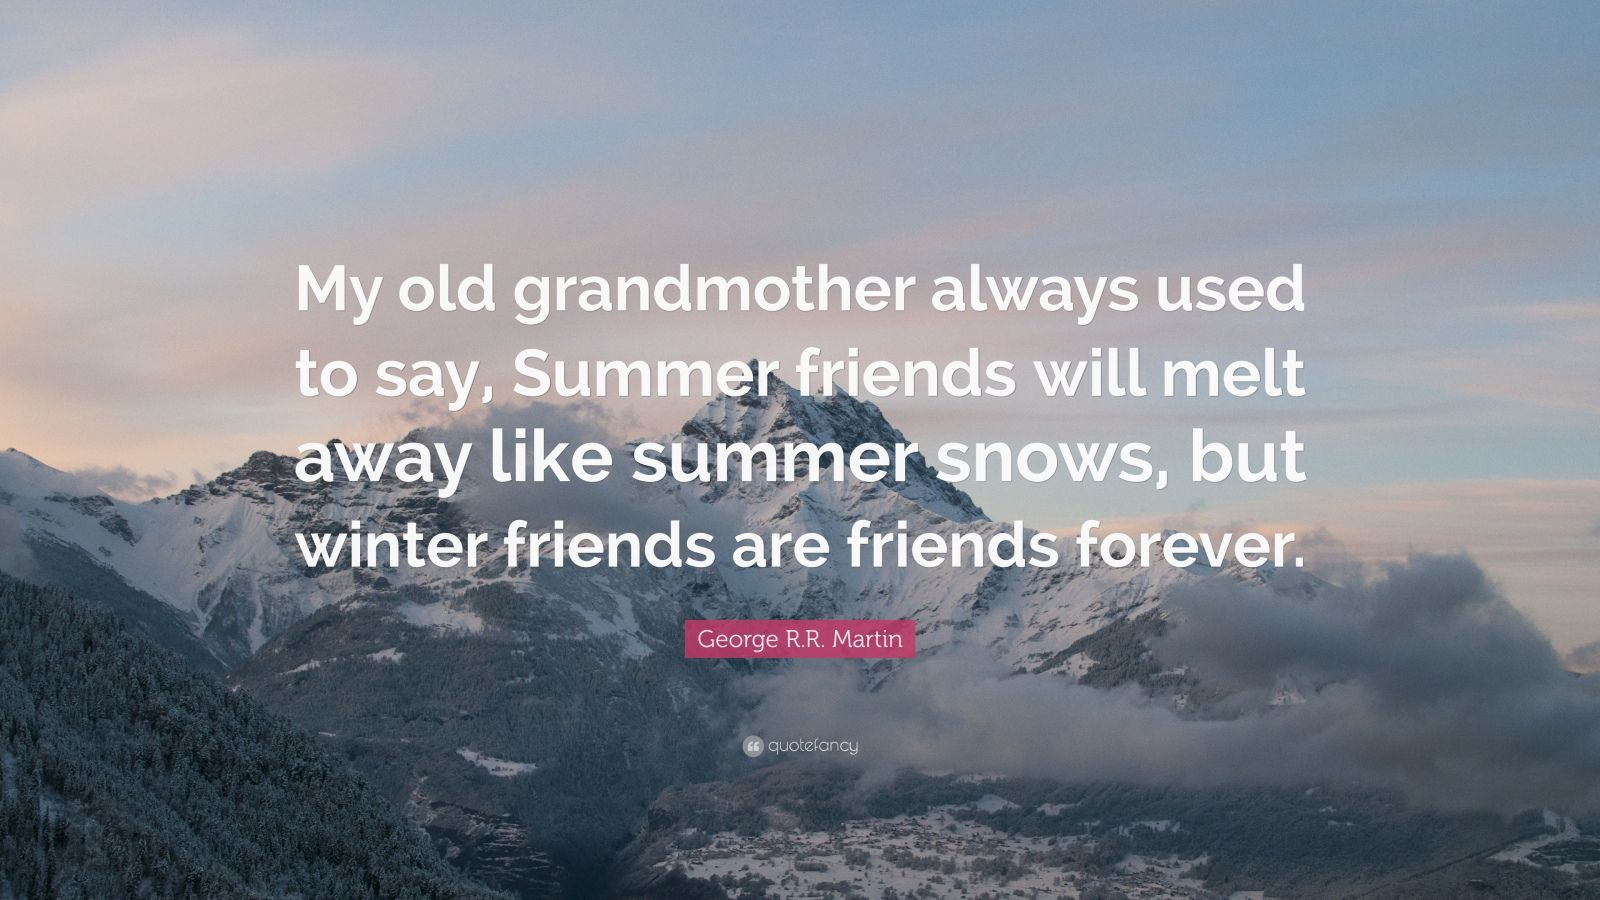 """George R.R. Martin Quote: """"My old grandmother always used to say, Summer friends will melt away like summer snows, but winter friends are friends forever."""""""